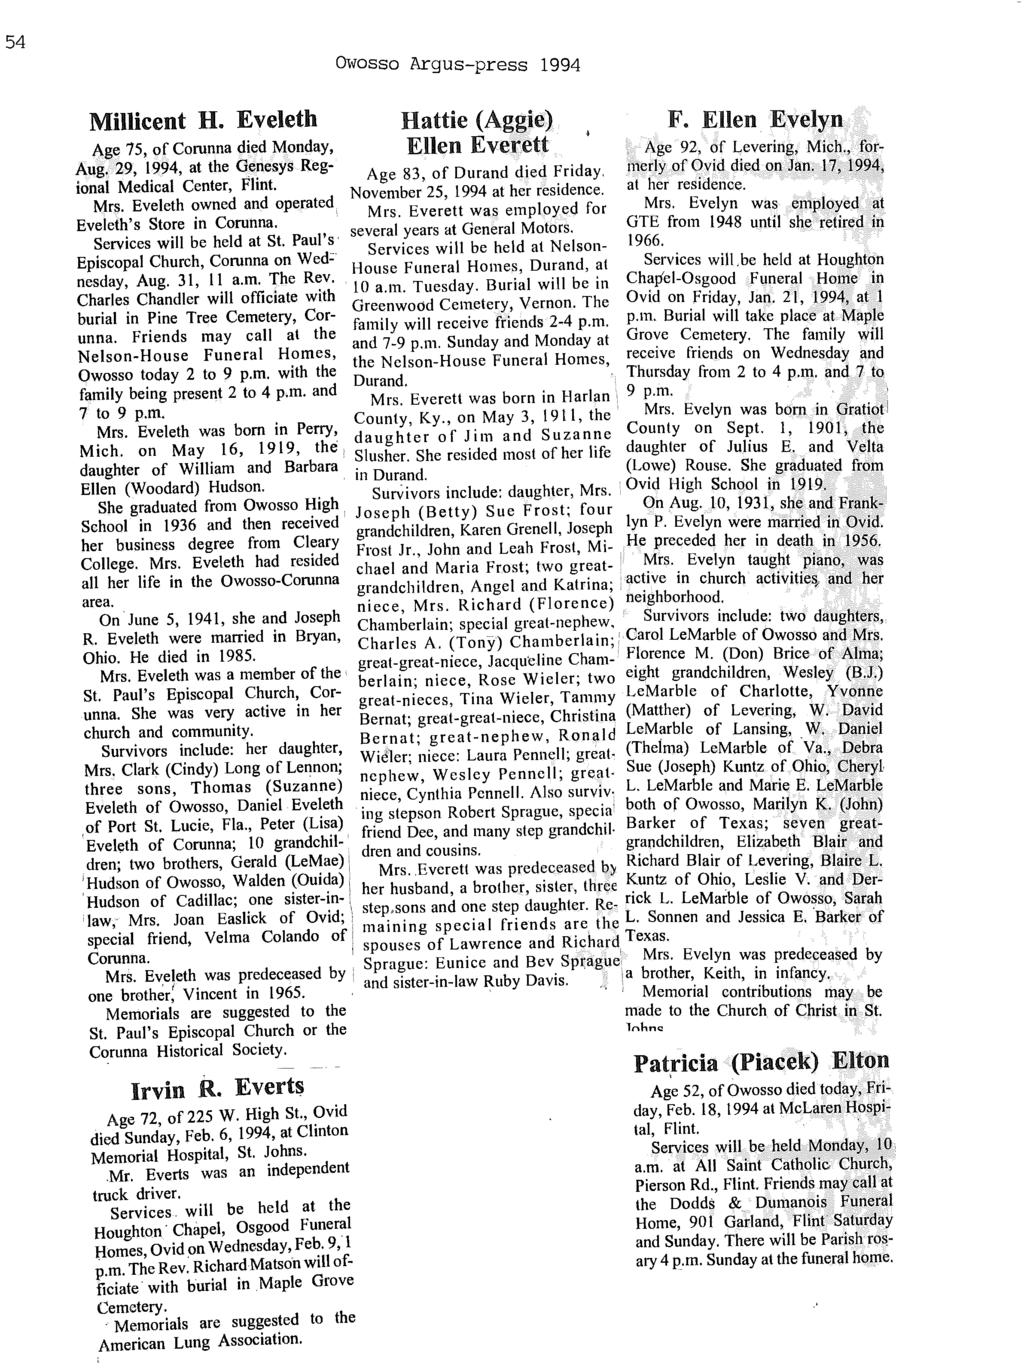 54 Owosso Argus-press 1994 Millicent H. Eveleth Hattie (Aggie) Ellen Everett F. Ellen, Evelyn one brother; Vincent in 1965. Memorials are suggested to the St.